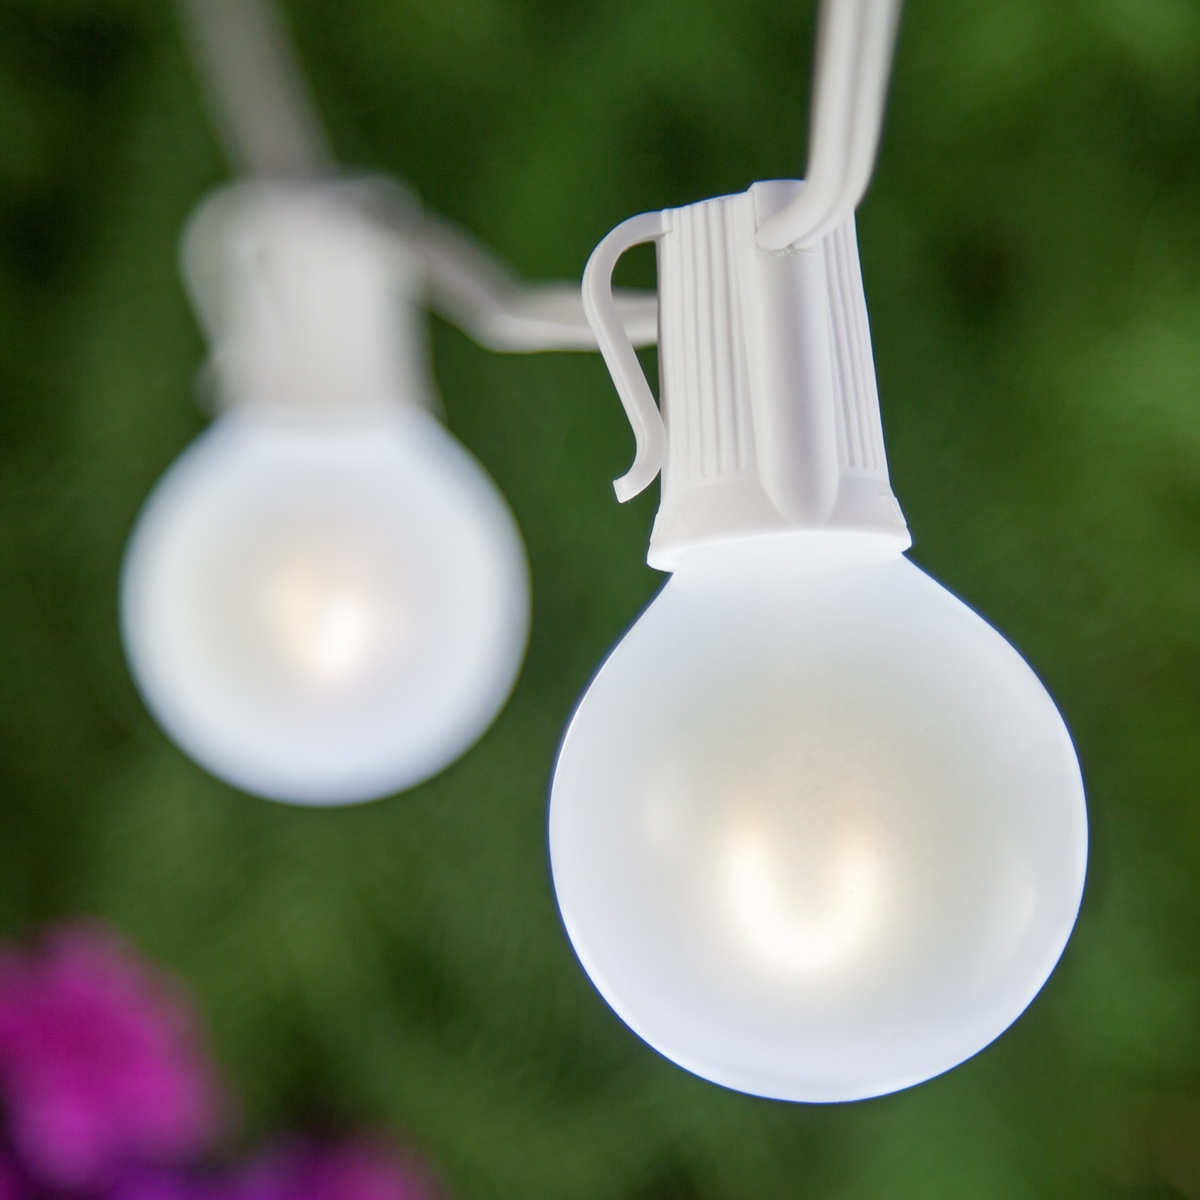 Led Shop Lights >> Patio Lights - Cool White Satin LED Lights, 25 G50 E17 Bulbs White Wire